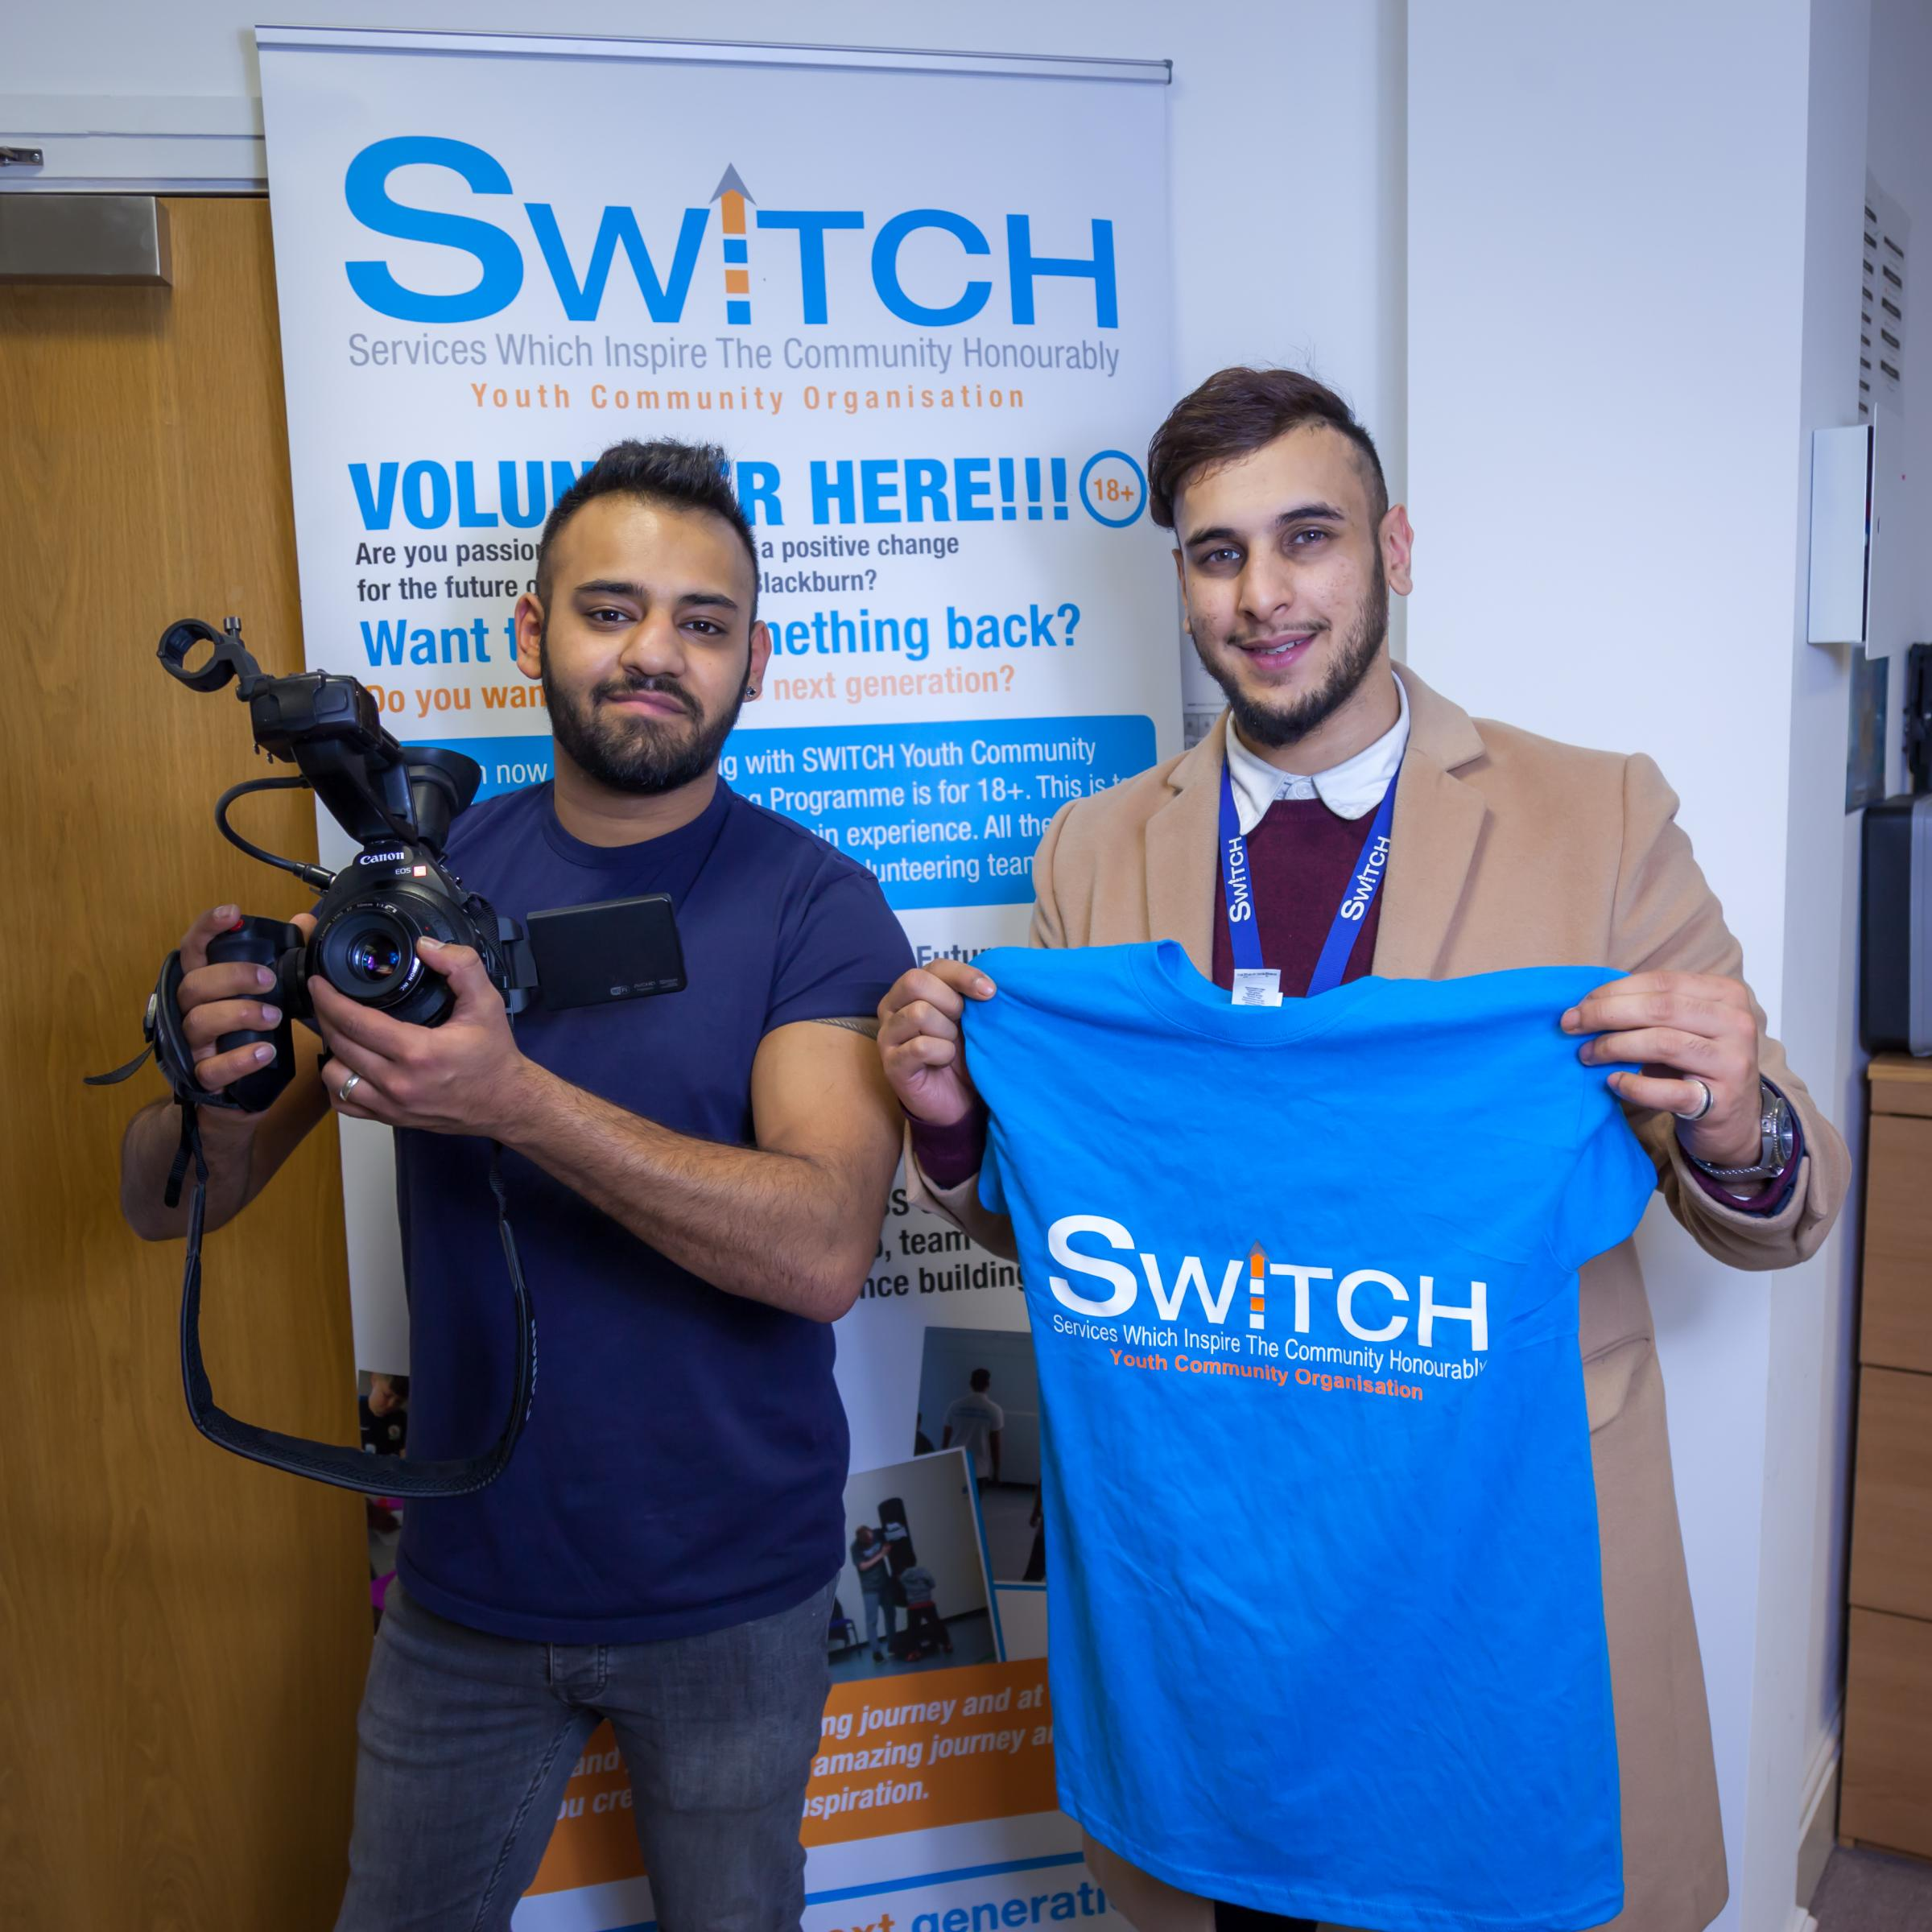 Film maker, Aeman supporting youth organisation SWITCH